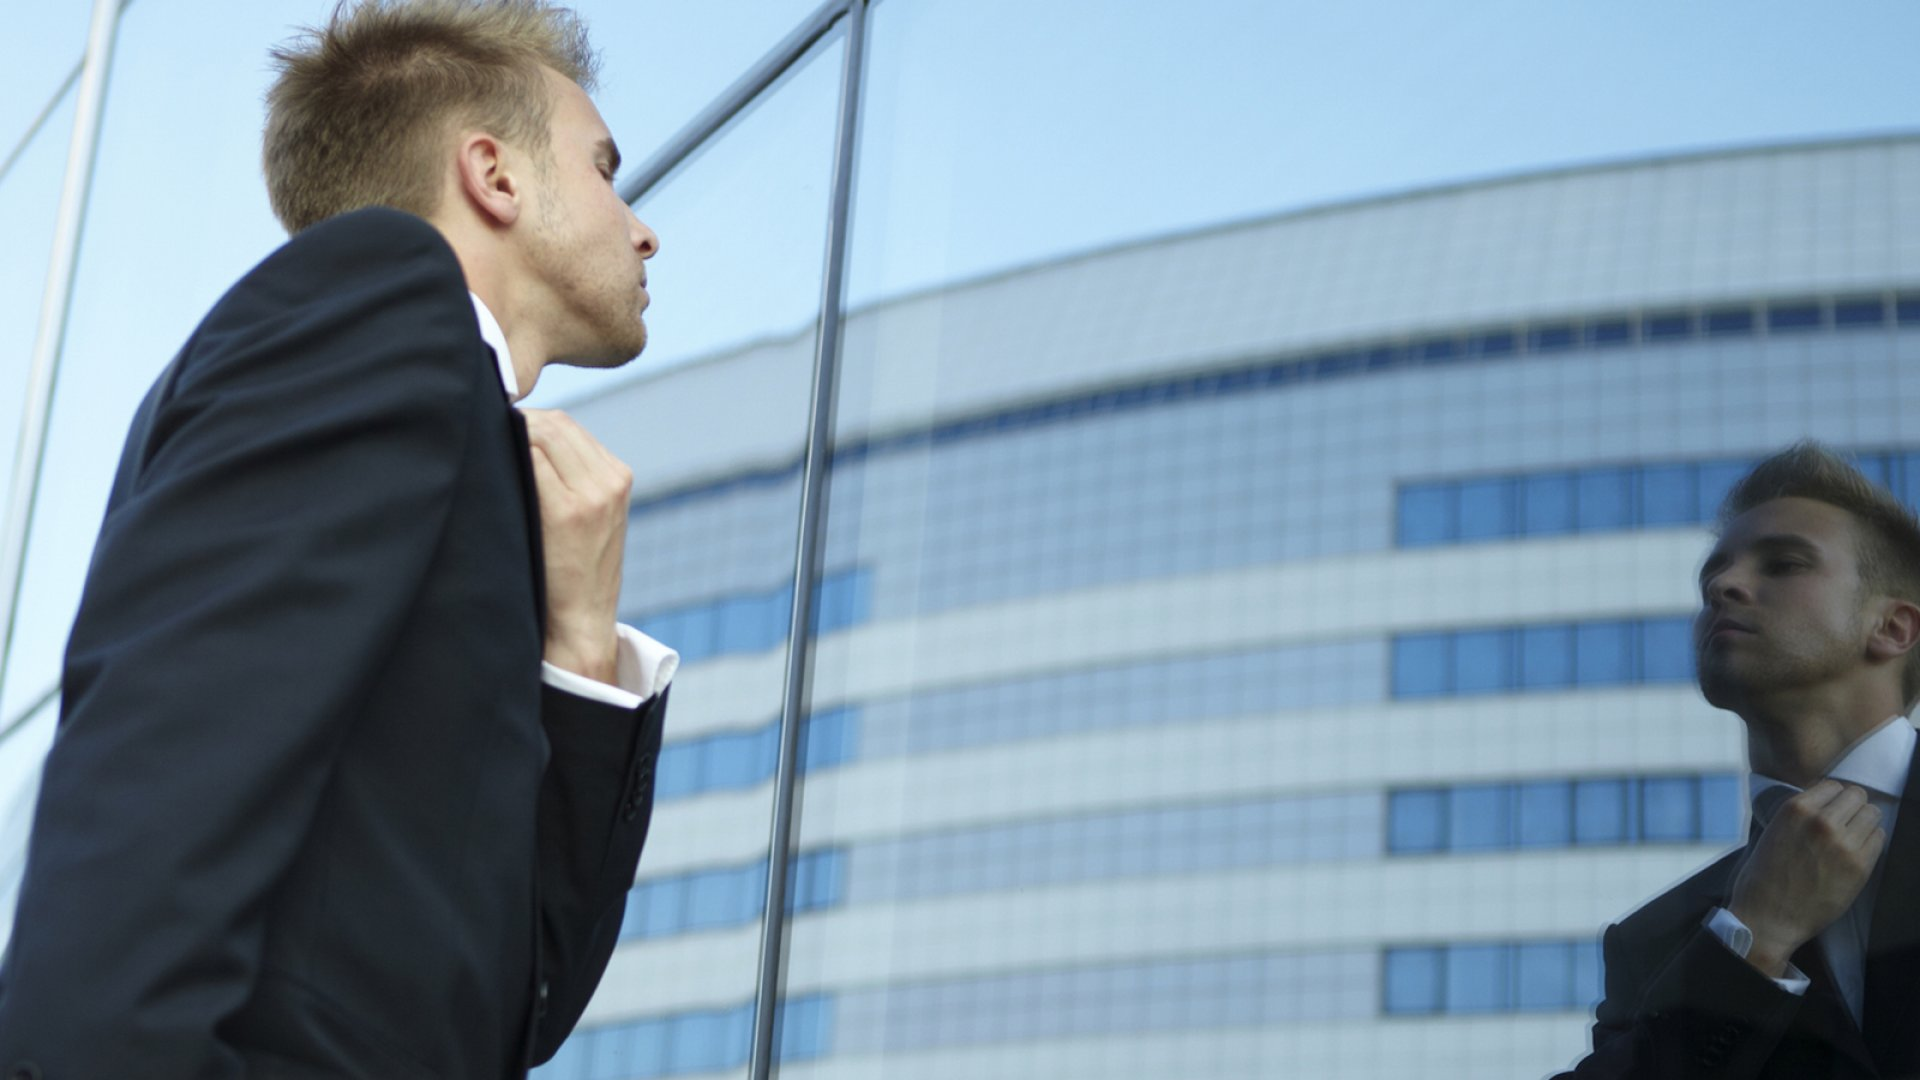 7 Ways to Improve Your First Impression